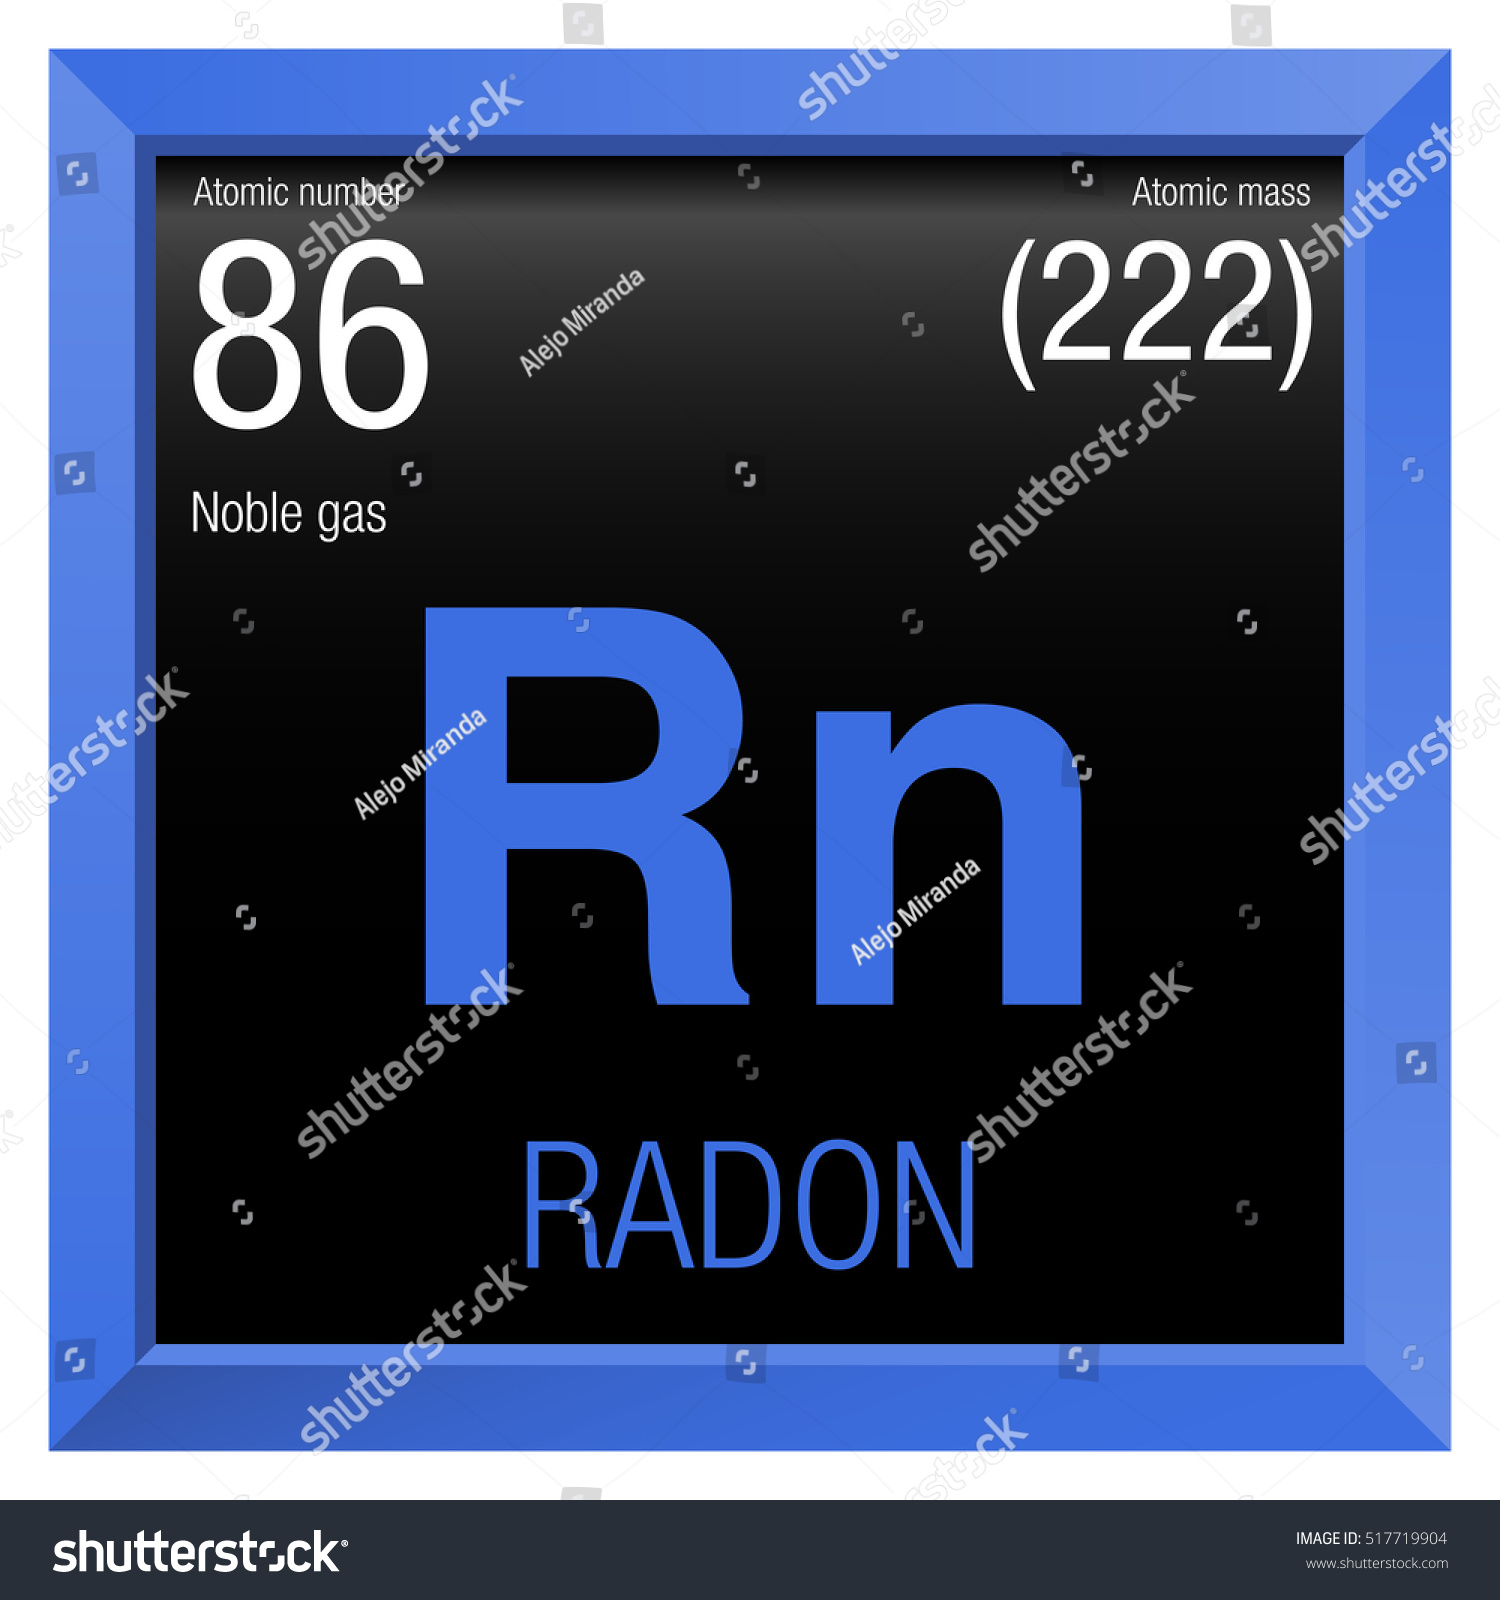 Element 86 periodic table choice image periodic table images radon symbol element number 86 periodic stock vector 517719904 element number 86 of the periodic table gamestrikefo Image collections